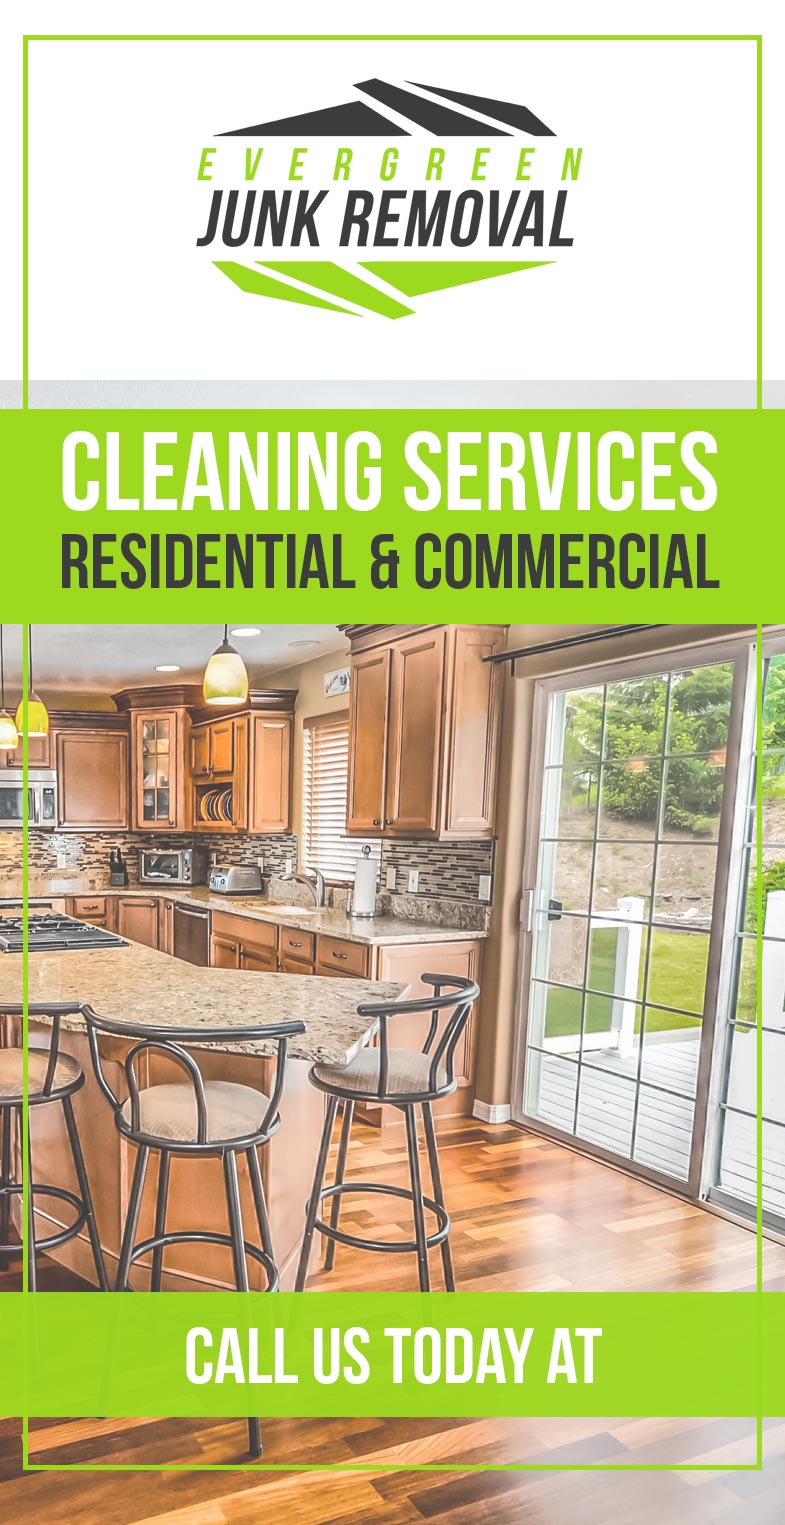 Washington Park Maid Services